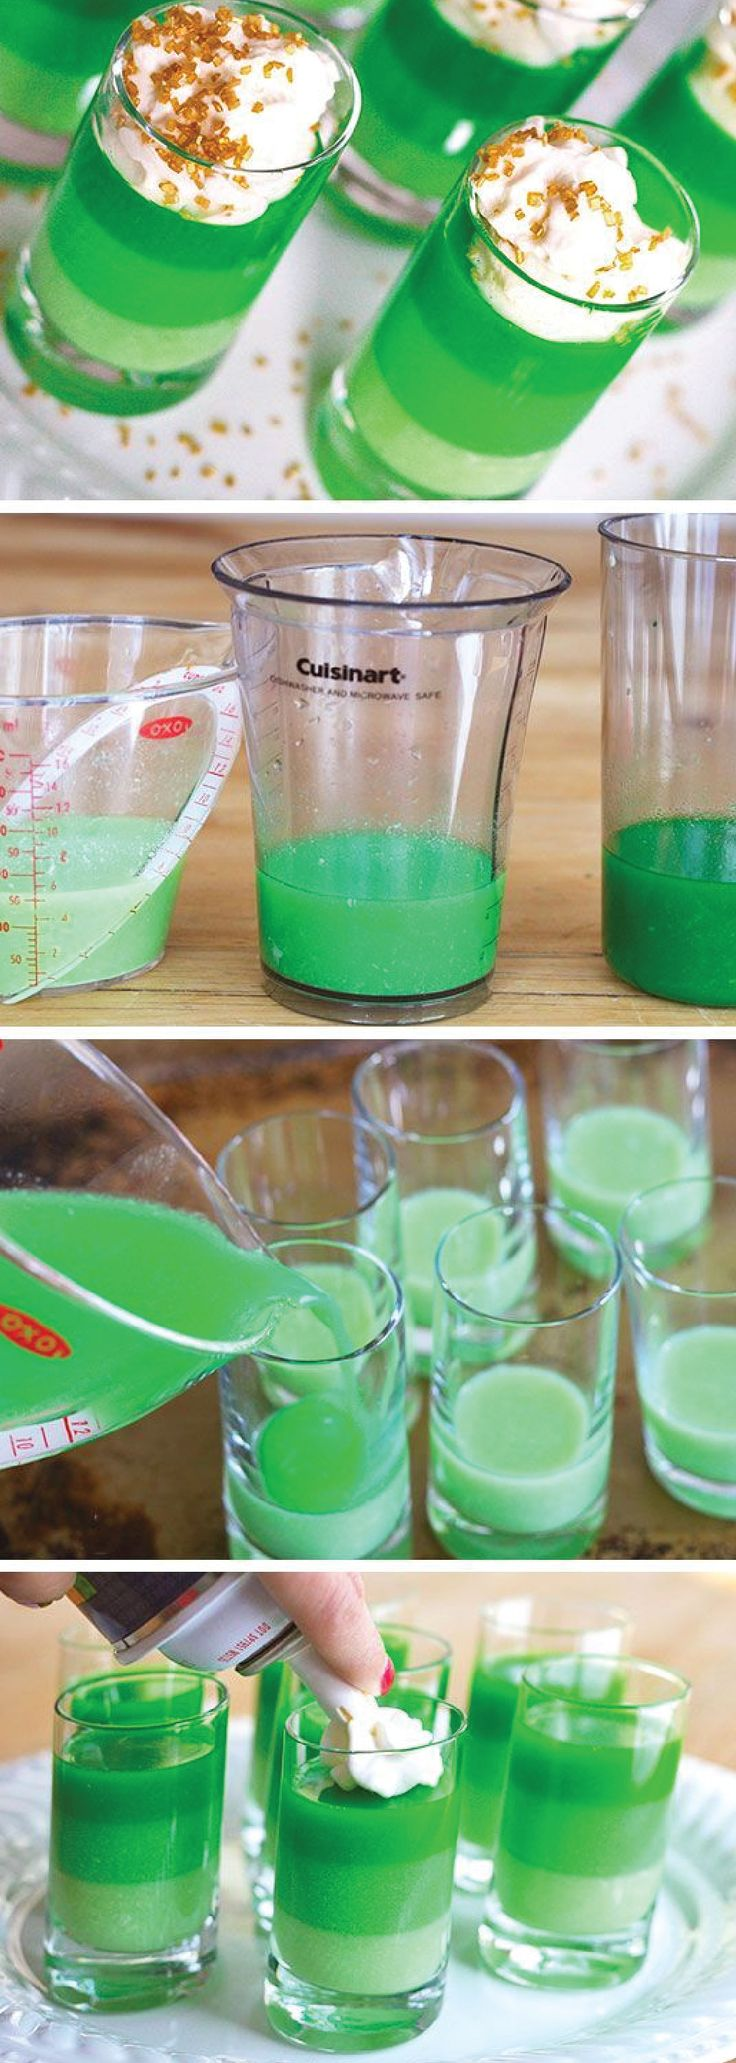 how to make gummies with jello